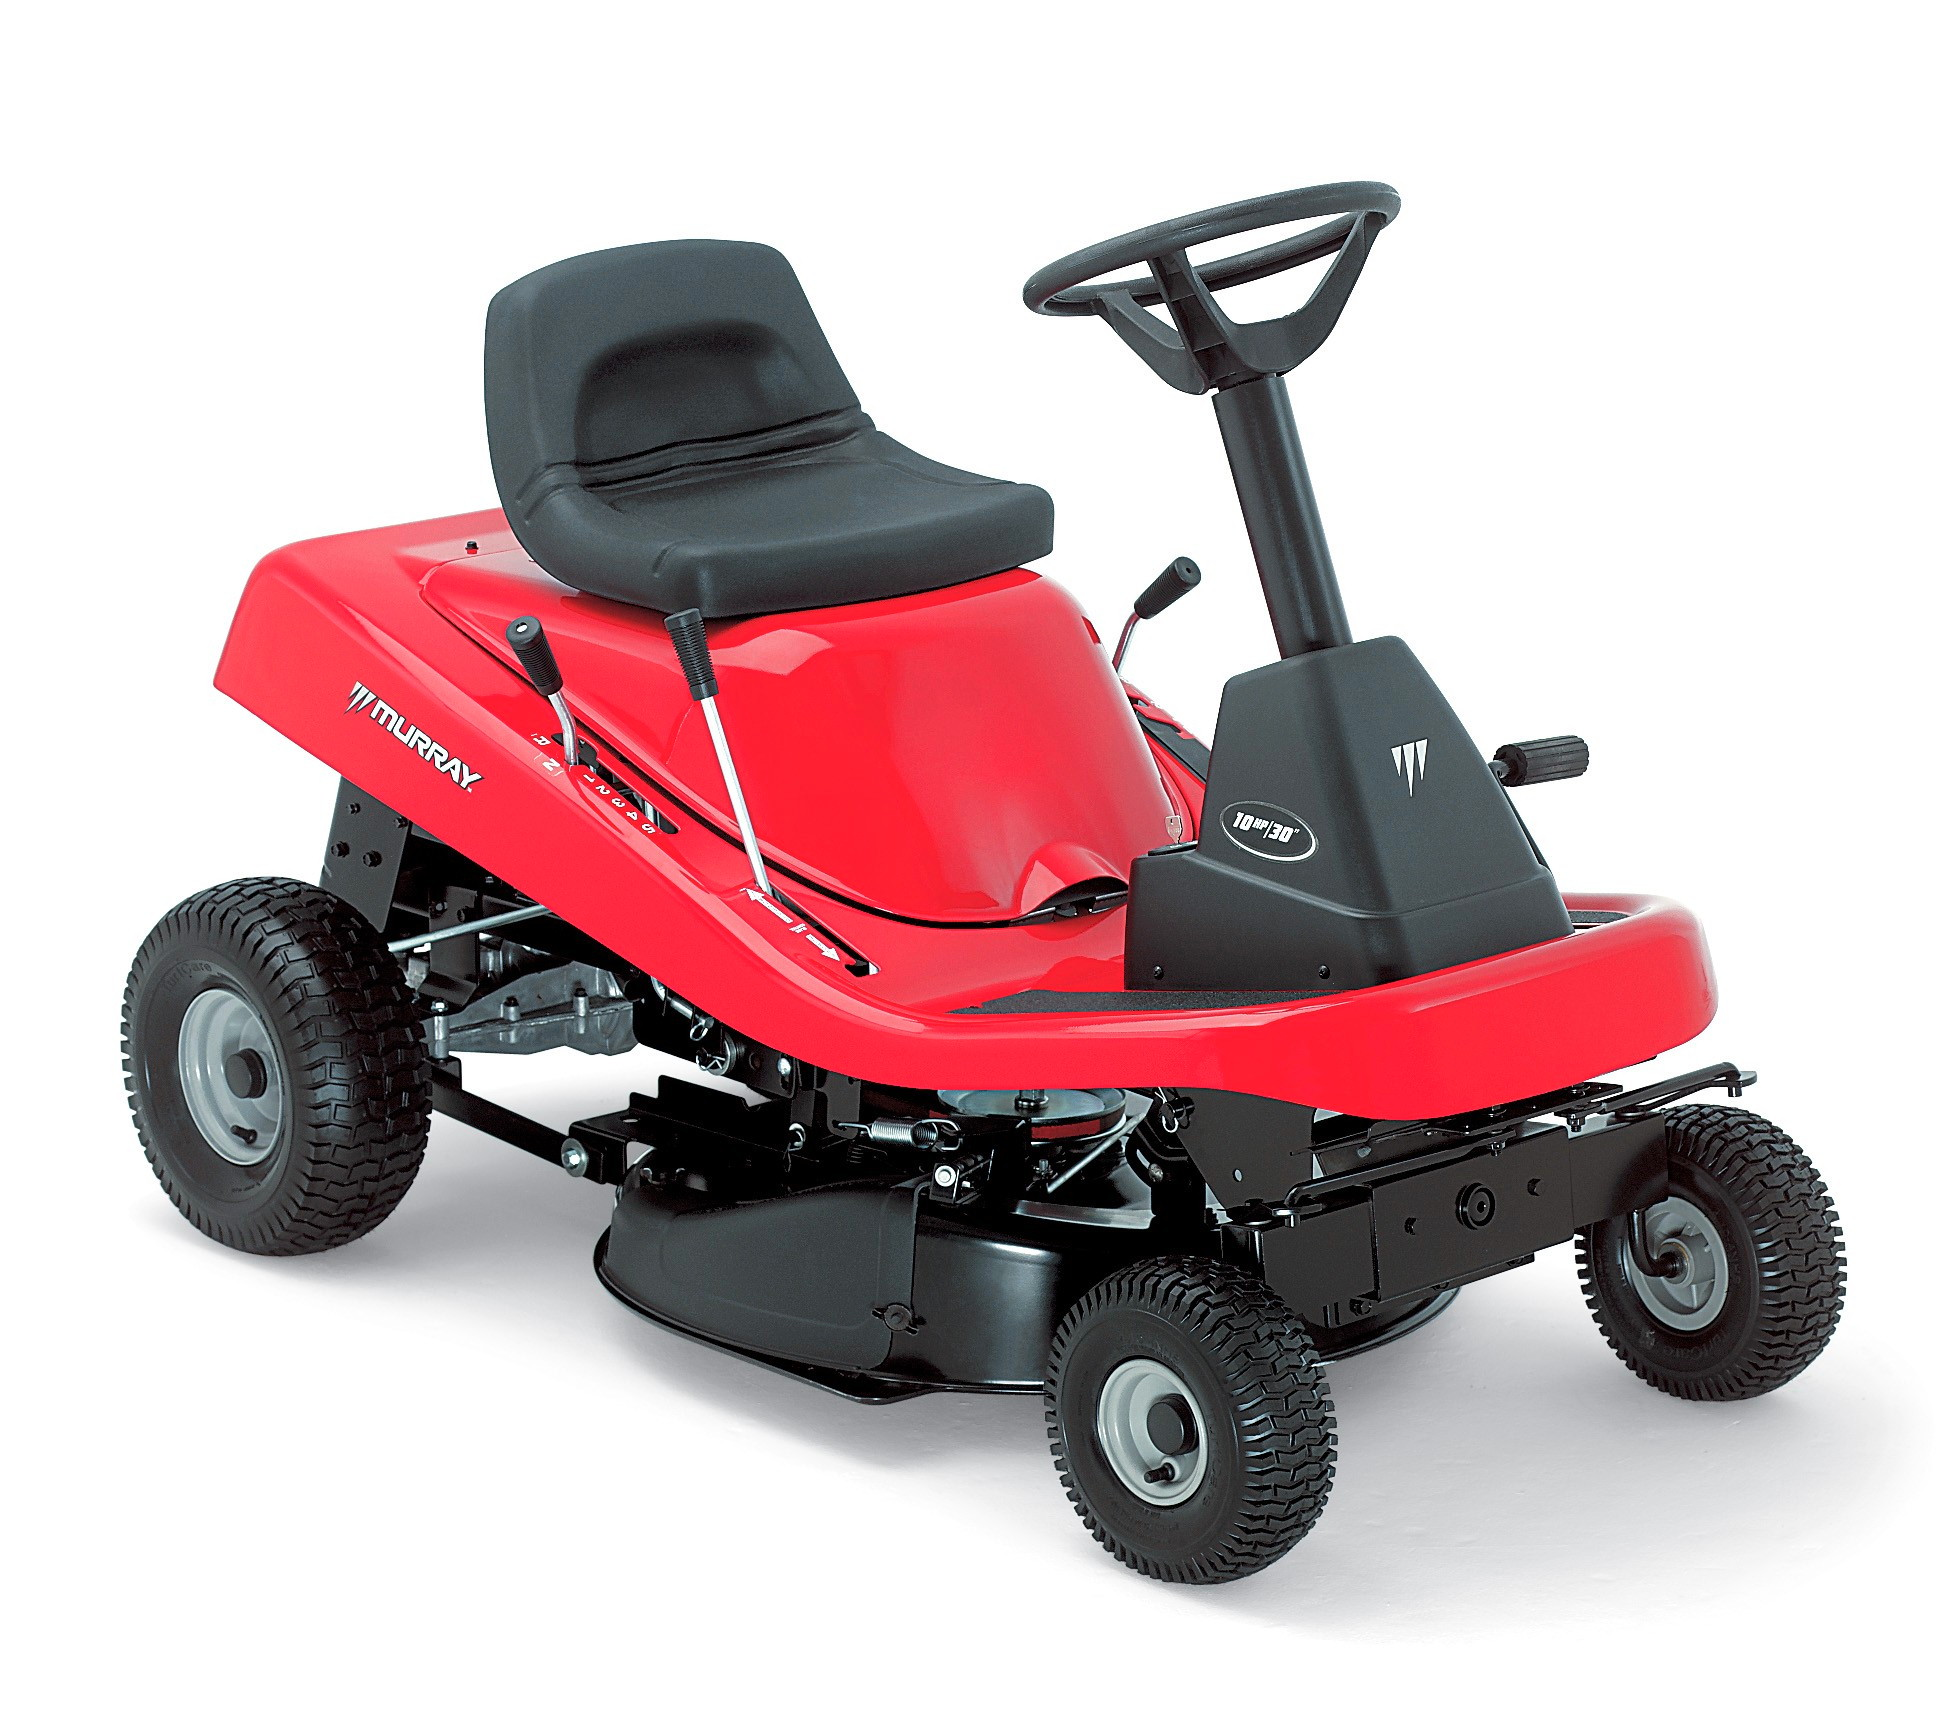 Cpsc  Murray Inc  Announce Recall Of Lawn Mowers And Lawn